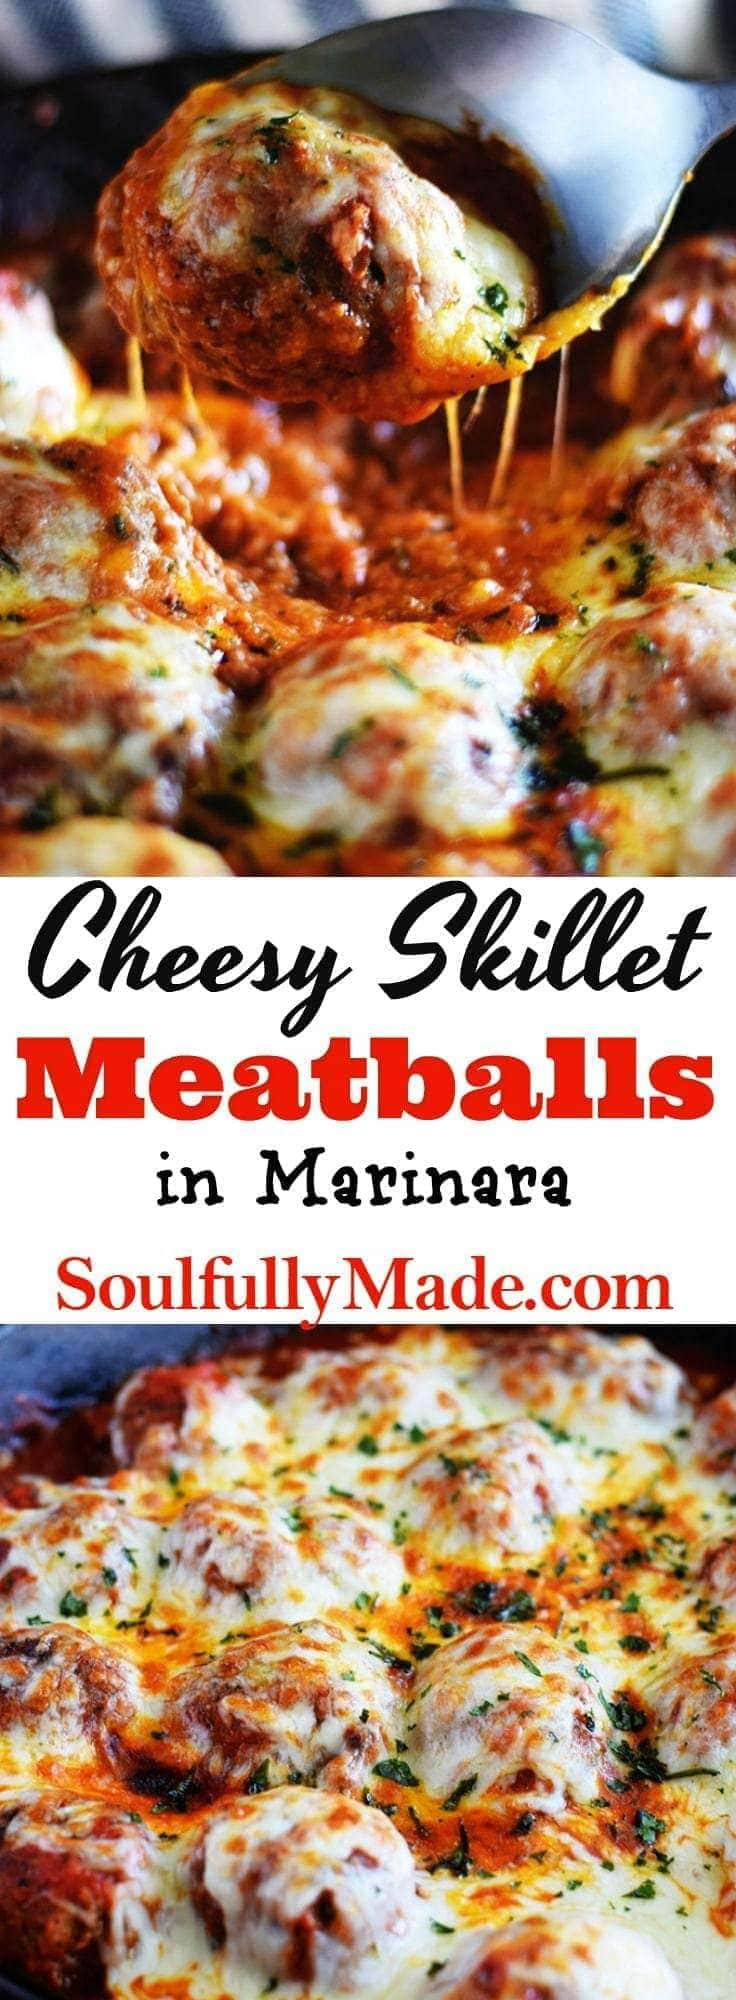 Cheesy Skillet Meatballs in Marinara Sauce